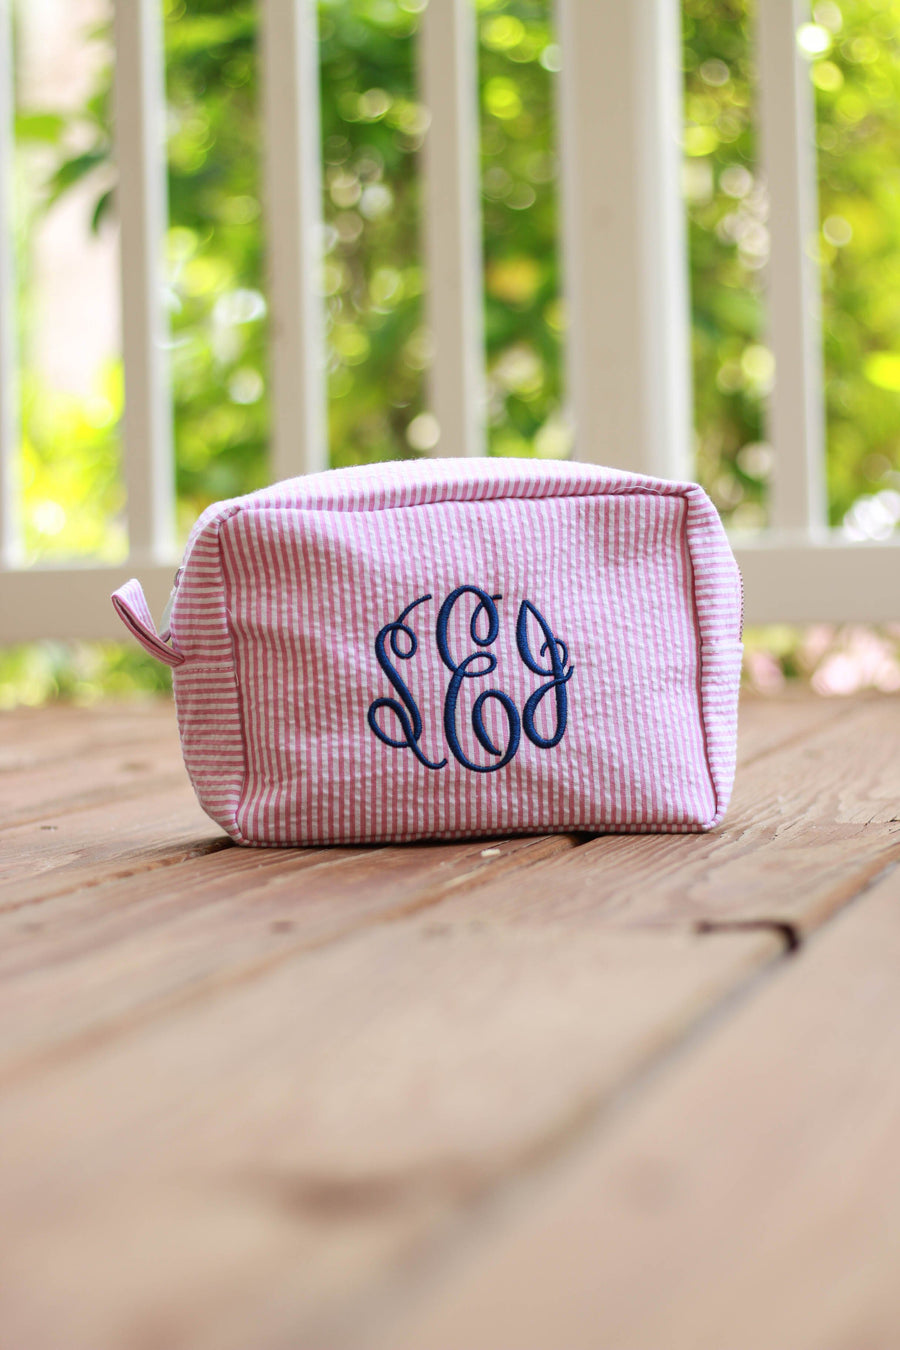 Classic Monogrammed Seersucker Cosmetic bag, Accessories, domil, - Sunny and Southern,